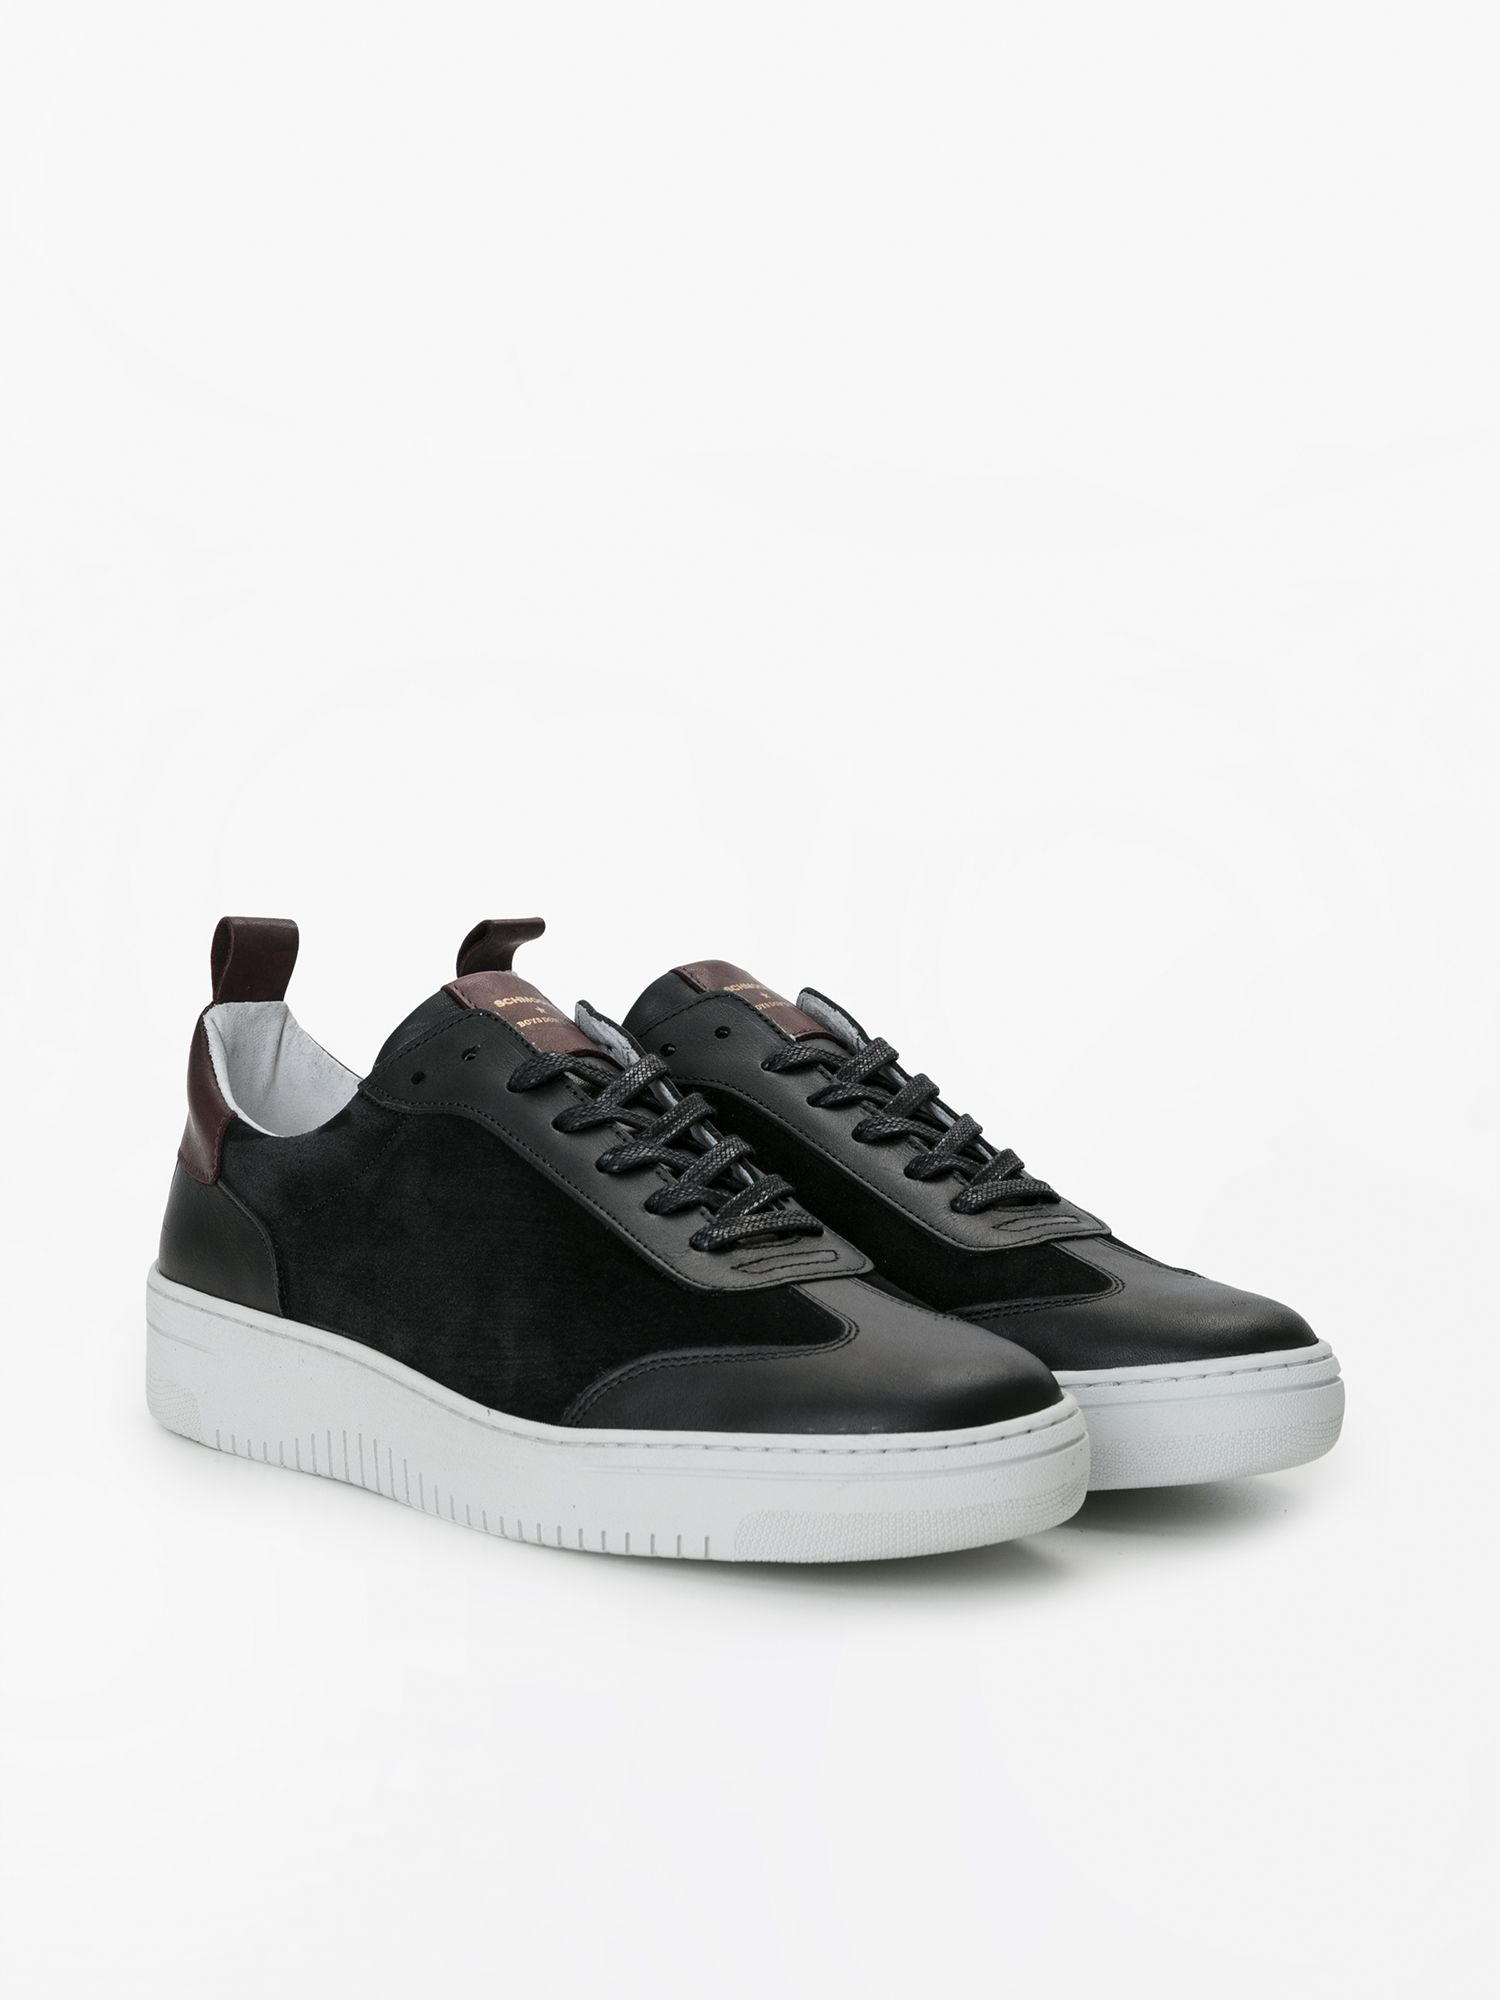 schmoove.fr EVOC SPEED - NAPPA/NAPPA - BLACK/BORDO